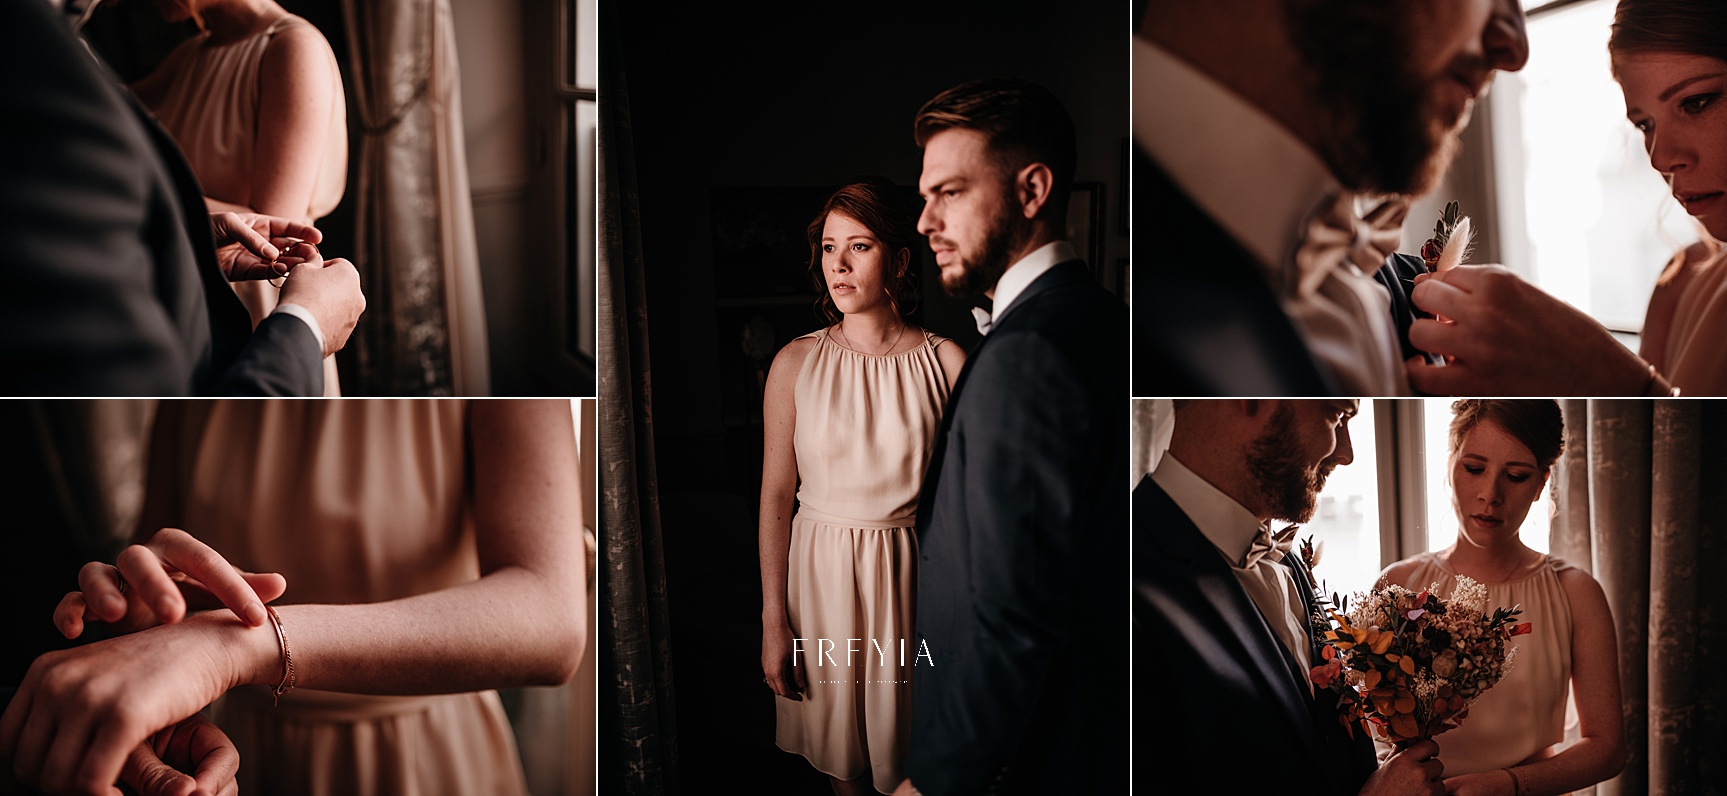 P + F |  mariage reportage alternatif moody intime vintage naturel boho boheme |  PHOTOGRAPHE mariage PARIS france destination  | FREYIA photography_-67.jpg